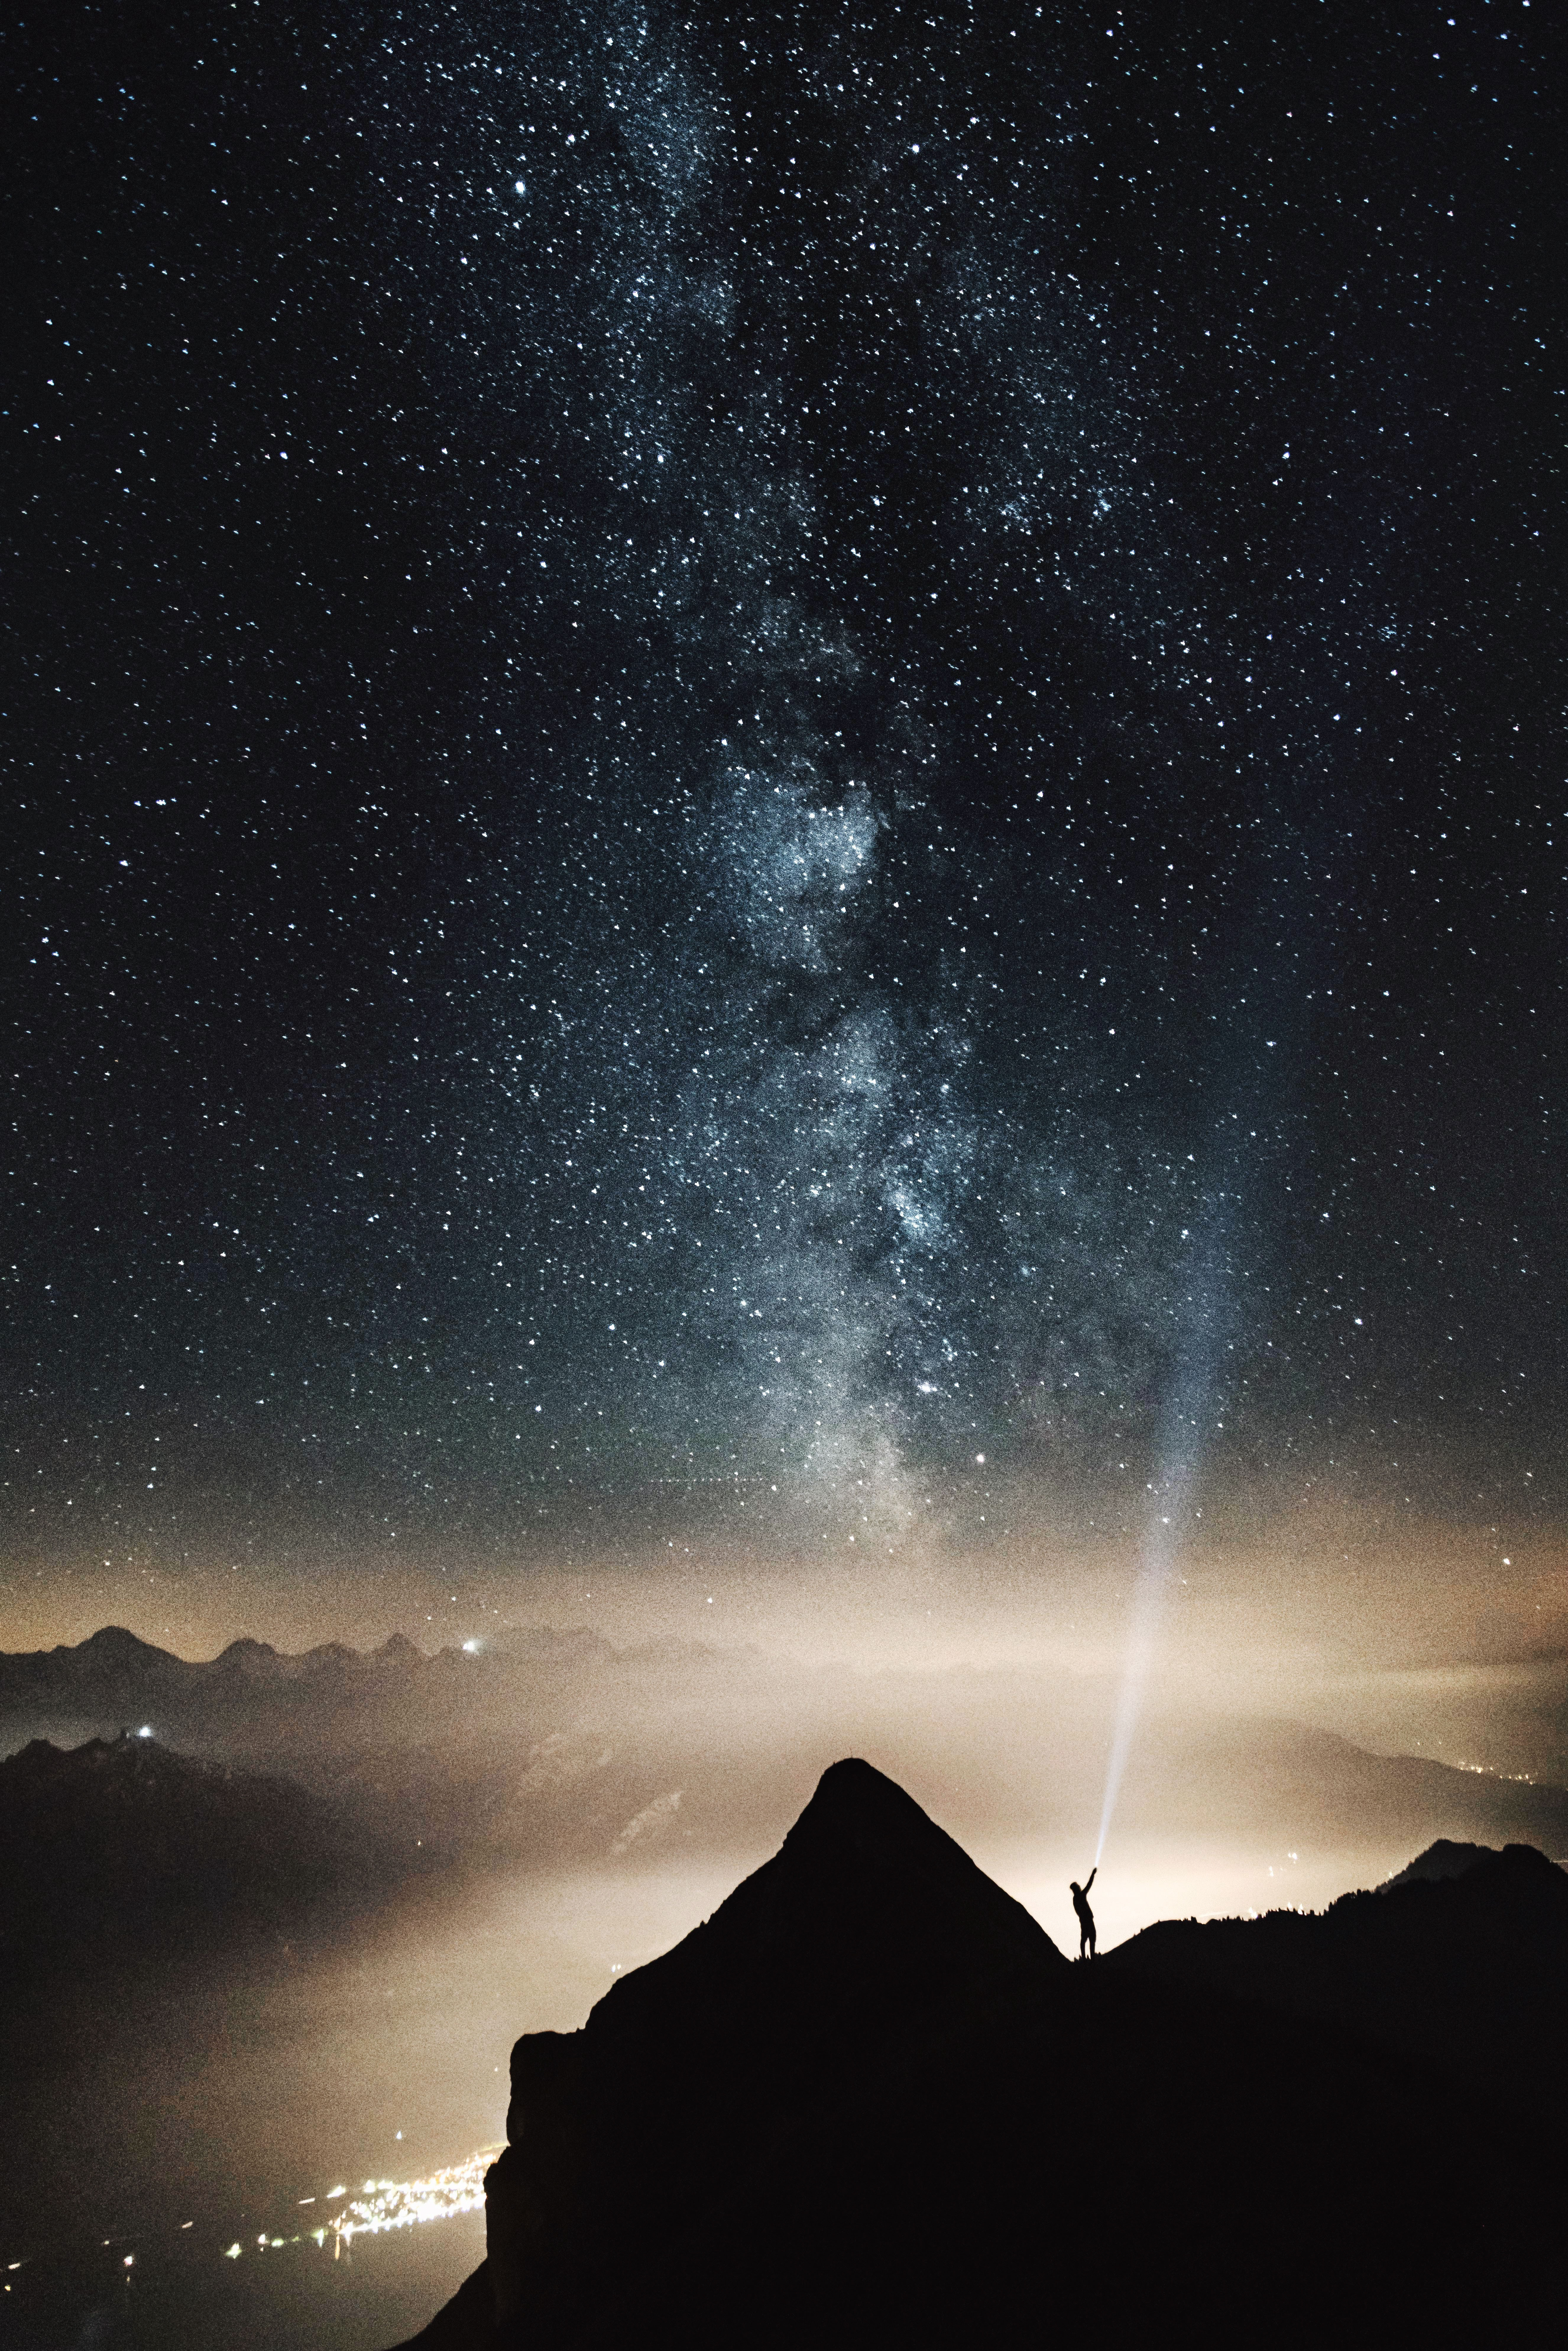 silhouette of person on top of mountain pointing flashlight on sky filled with stars at night time